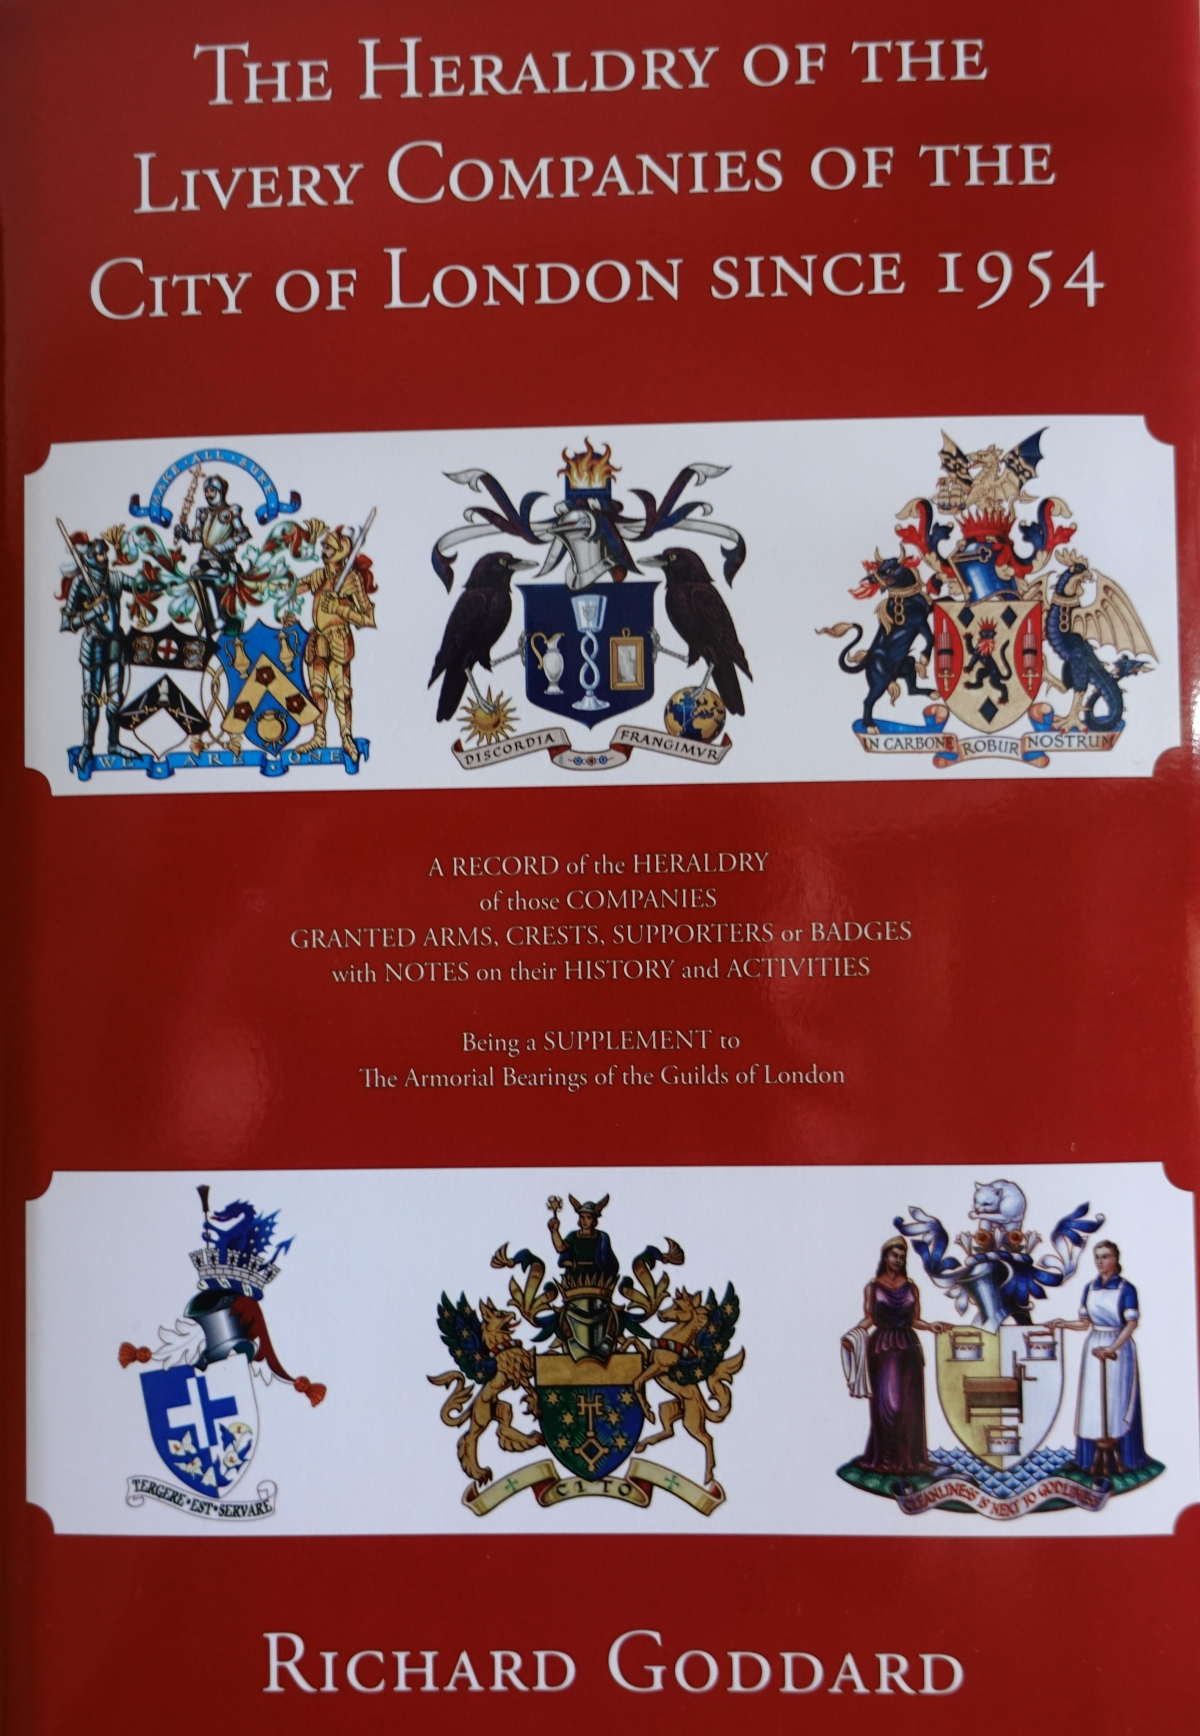 The Heraldry of the Livery Companies of the City of London Book Launch